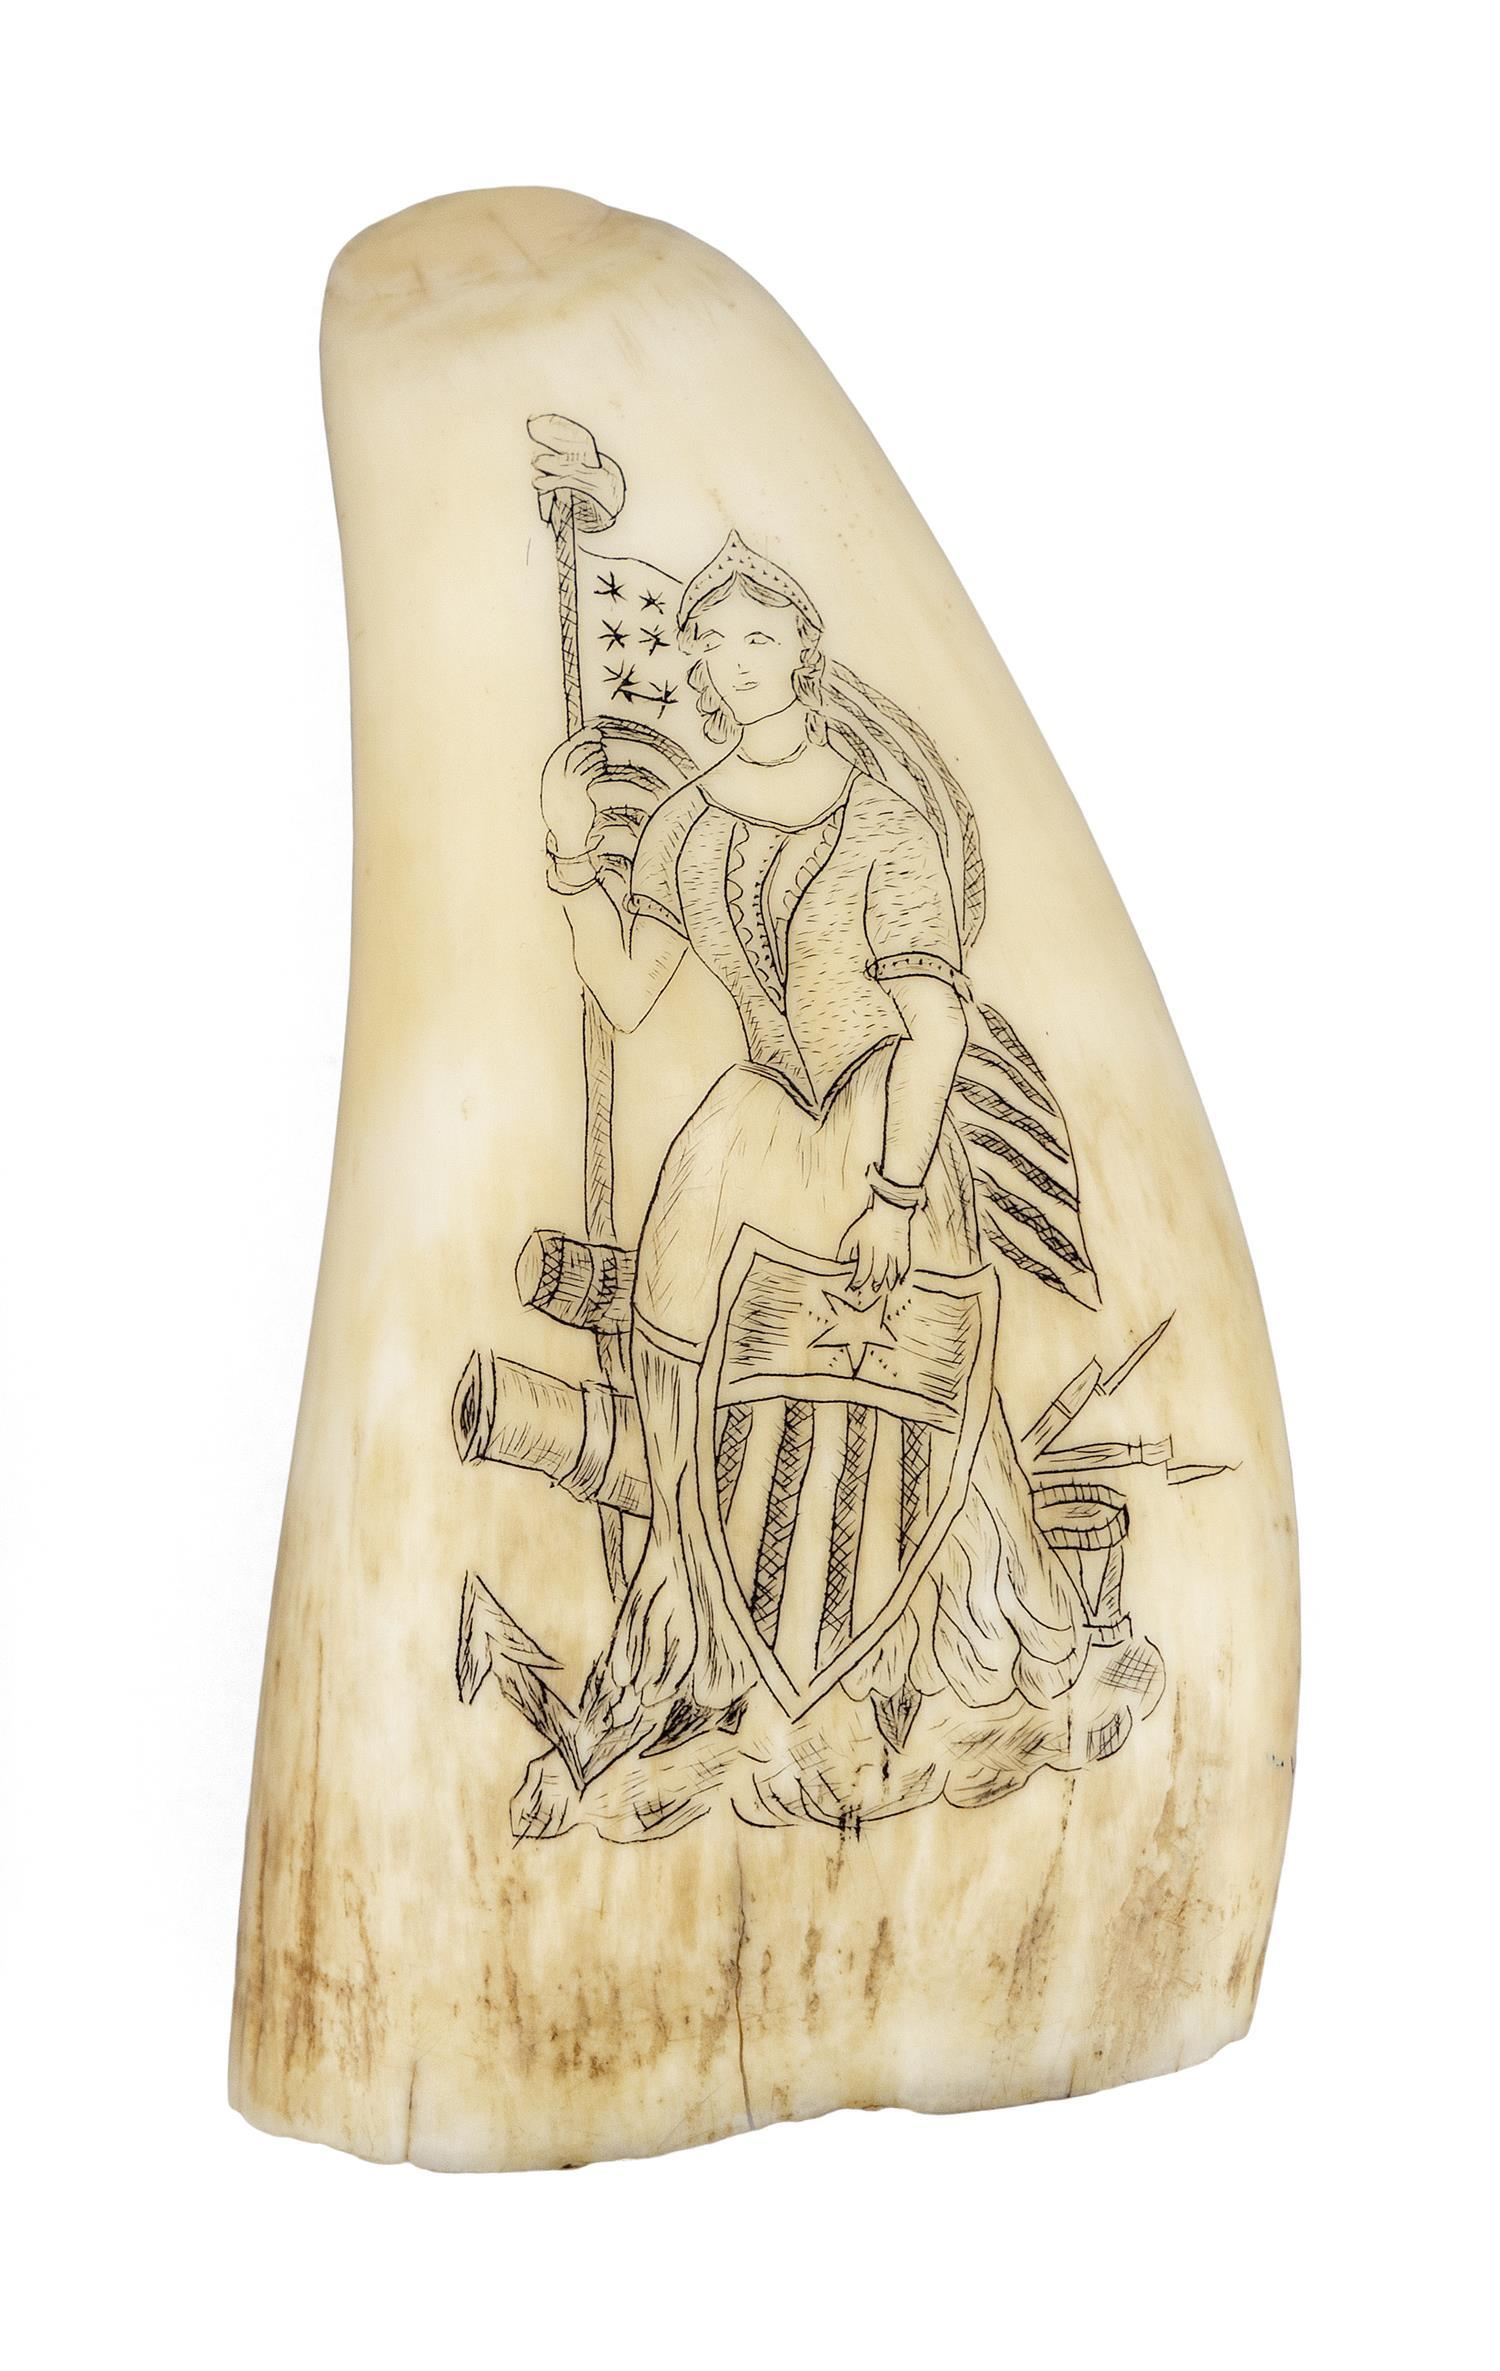 * ENGRAVED WHALE'S TOOTH Obverse depicts Lady Liberty holding a Liberty shield and an American flag on a pole topped with a Phrygian..